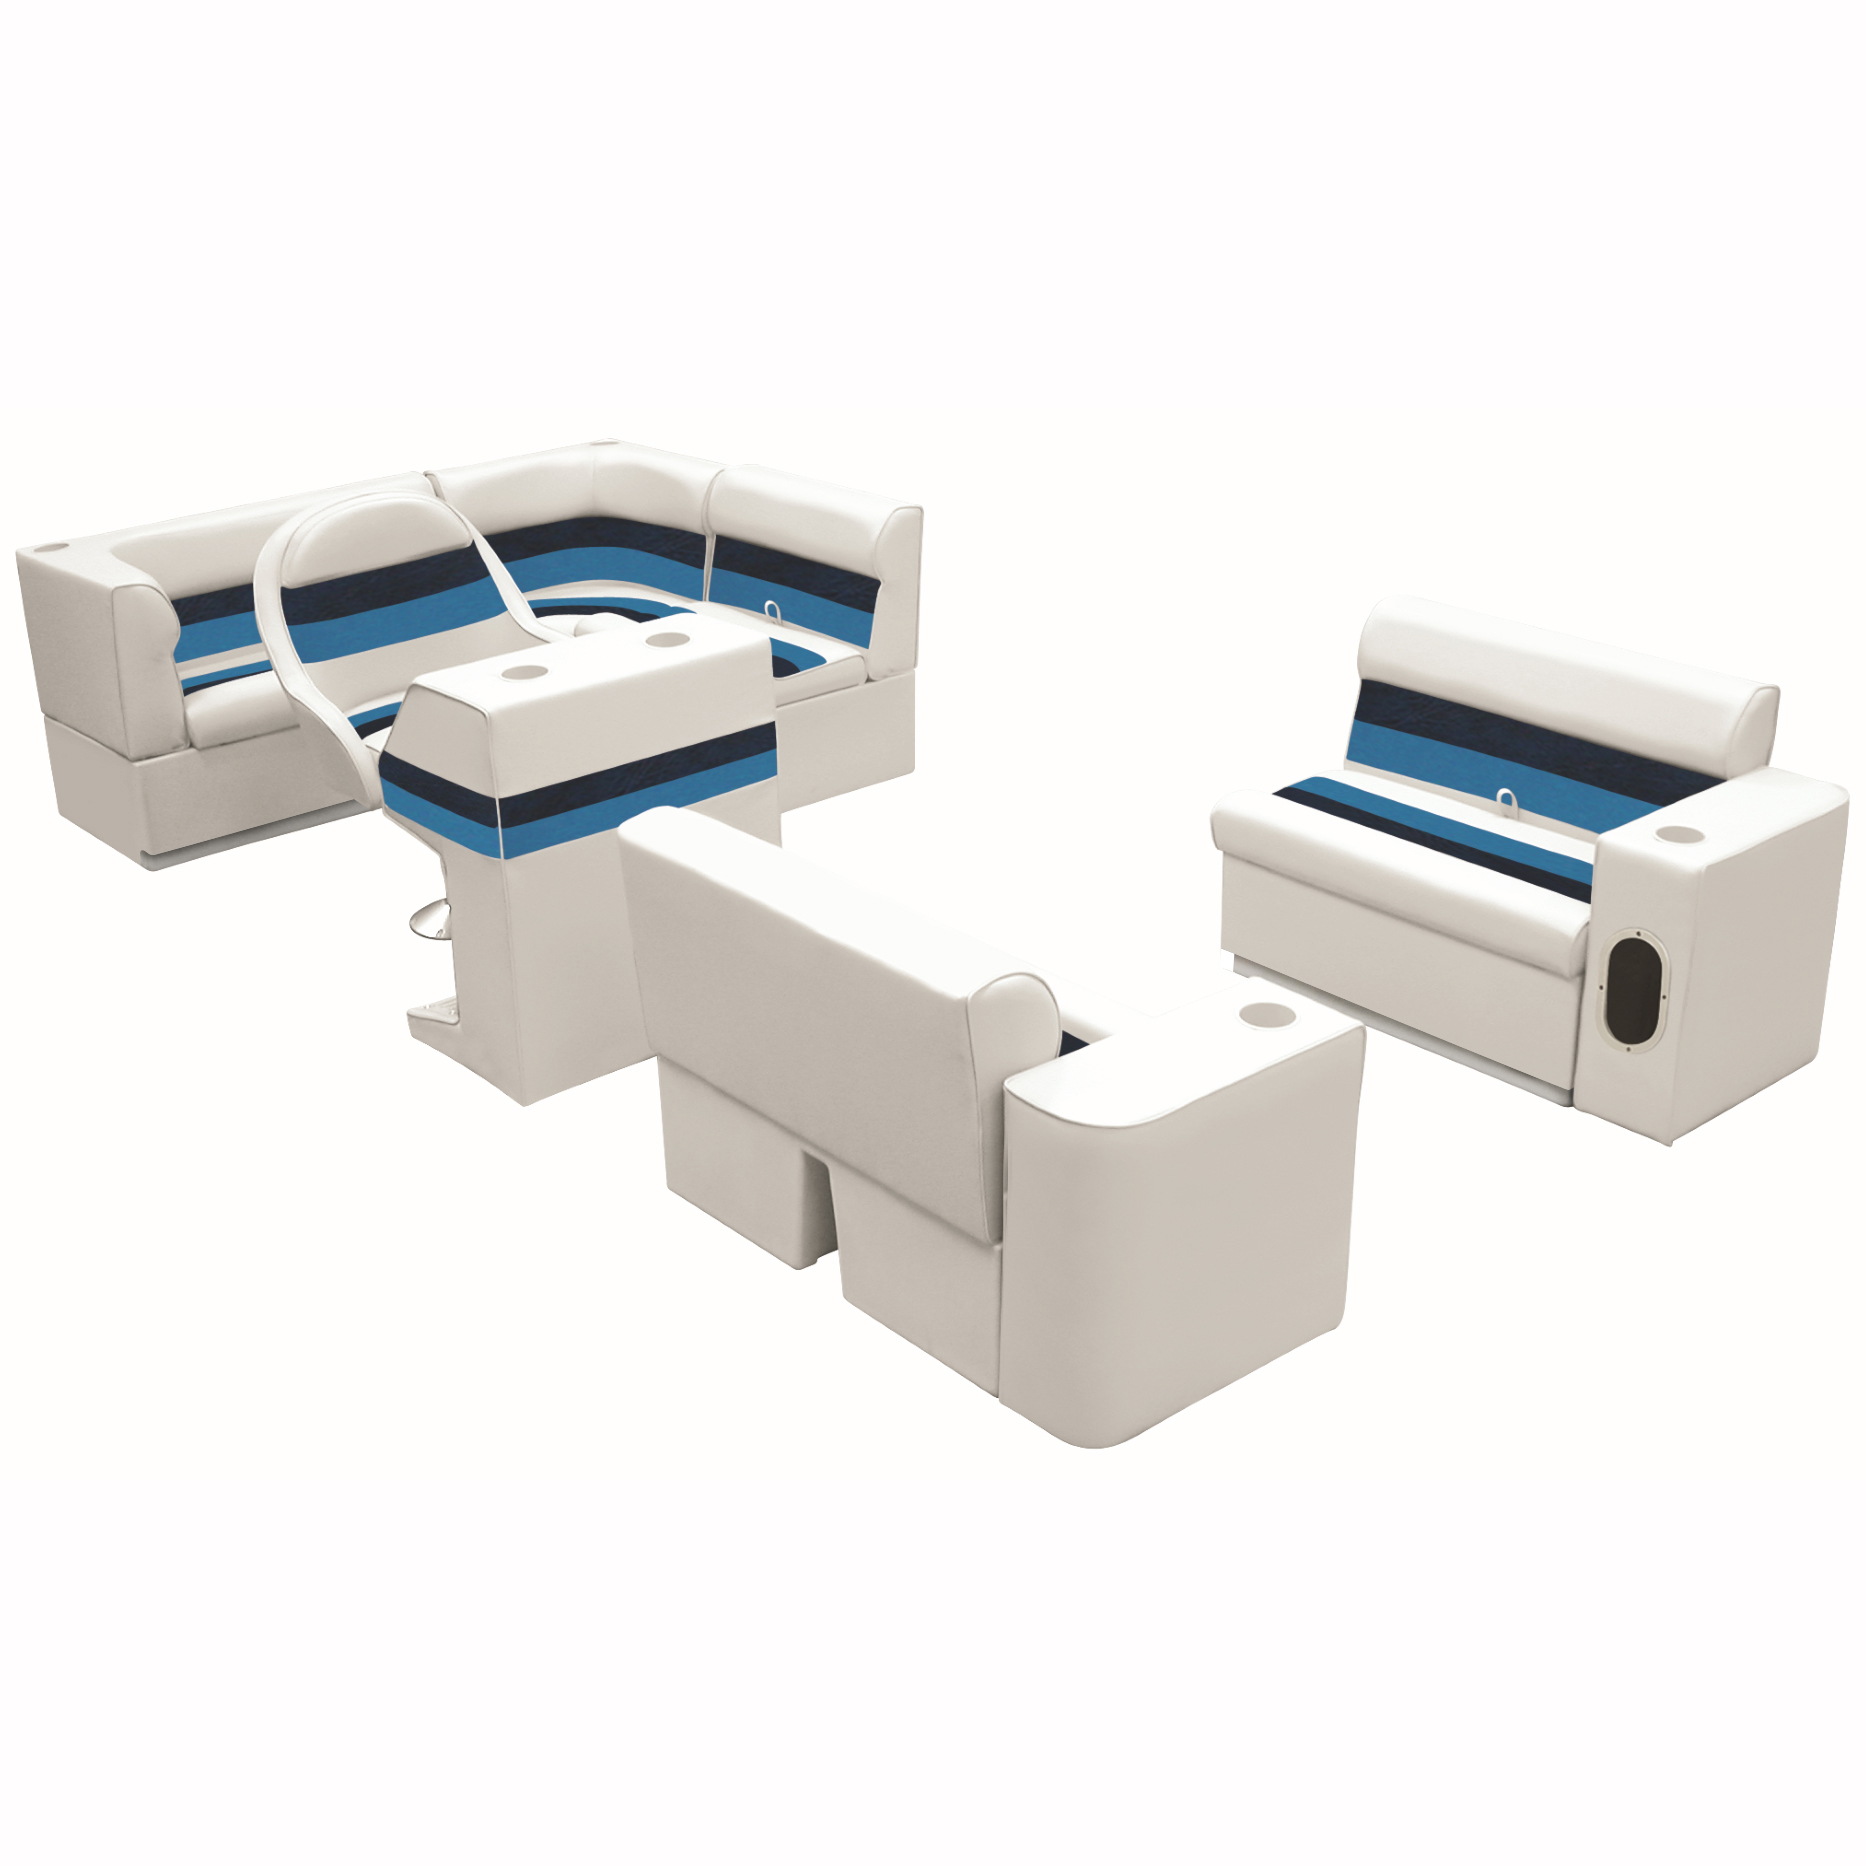 Deluxe Pontoon Furniture with Toe Kick Base, Group 1 Package, White/Navy/Blue